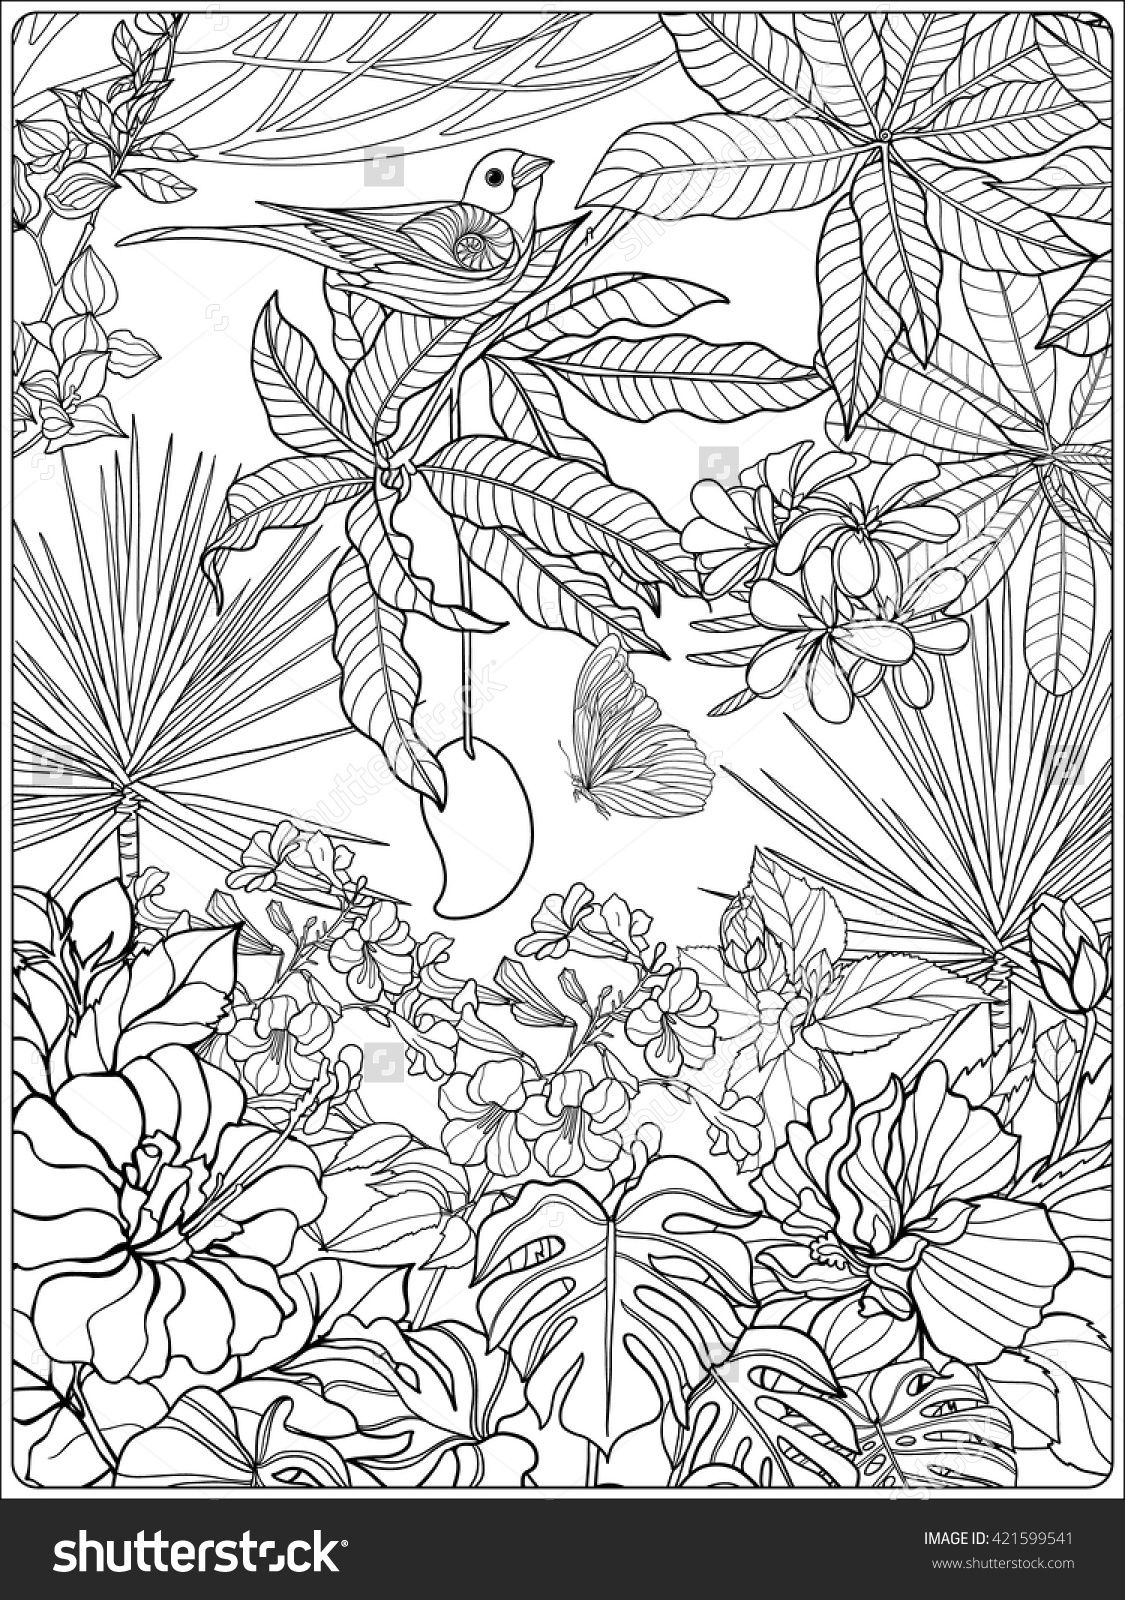 Tropical Birds And Garden Coloring Page For Adults Shutterstock 421599541 Bird Coloring Pages Garden Coloring Pages Coloring Pages